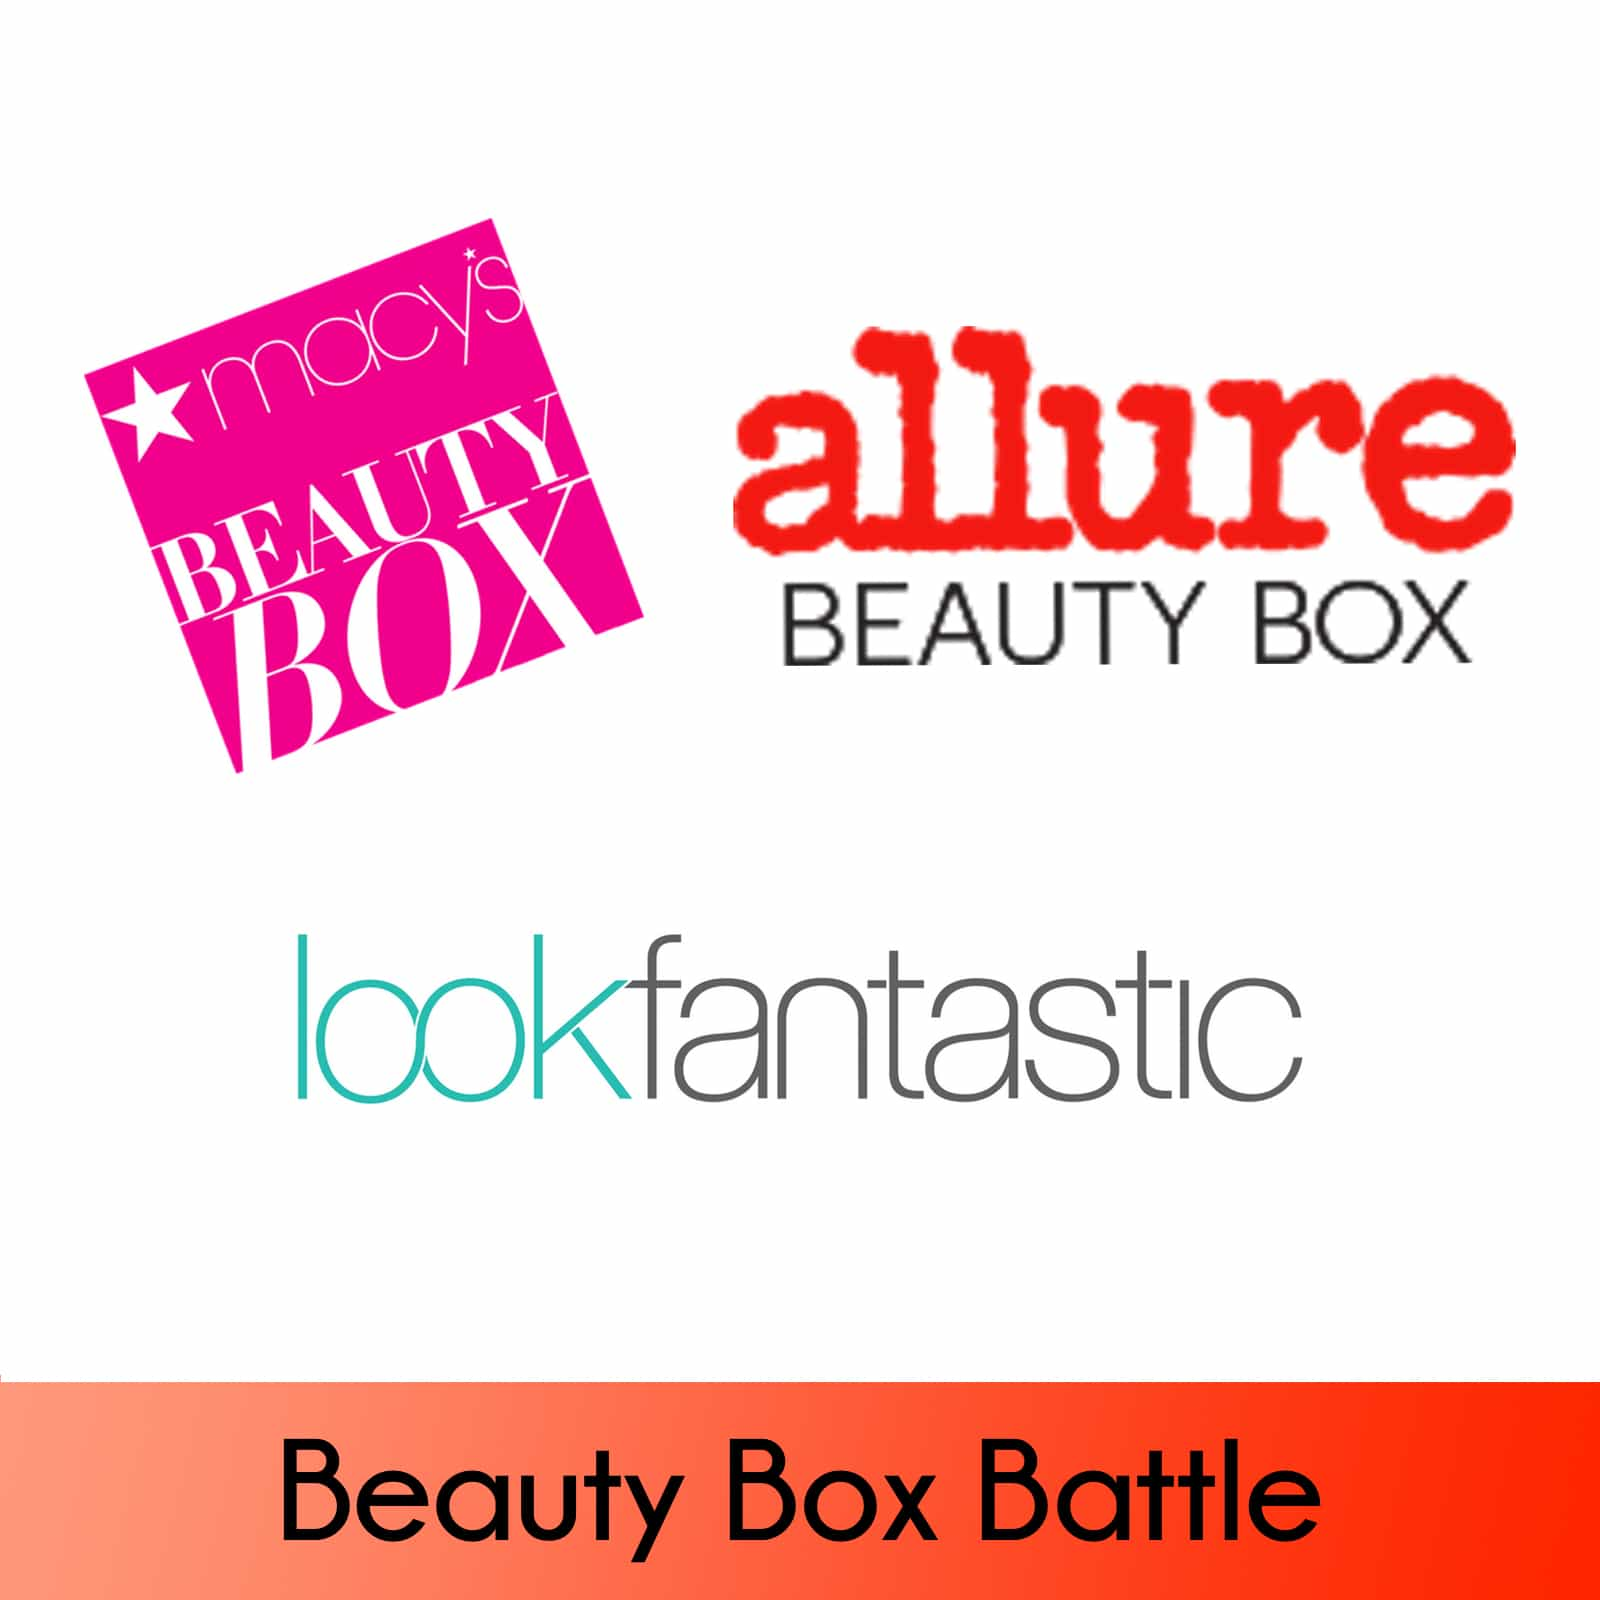 Macy's Beauty Box vs Allure Beauty Box vs Lookfantastic February 2018 Beauty Boxes!